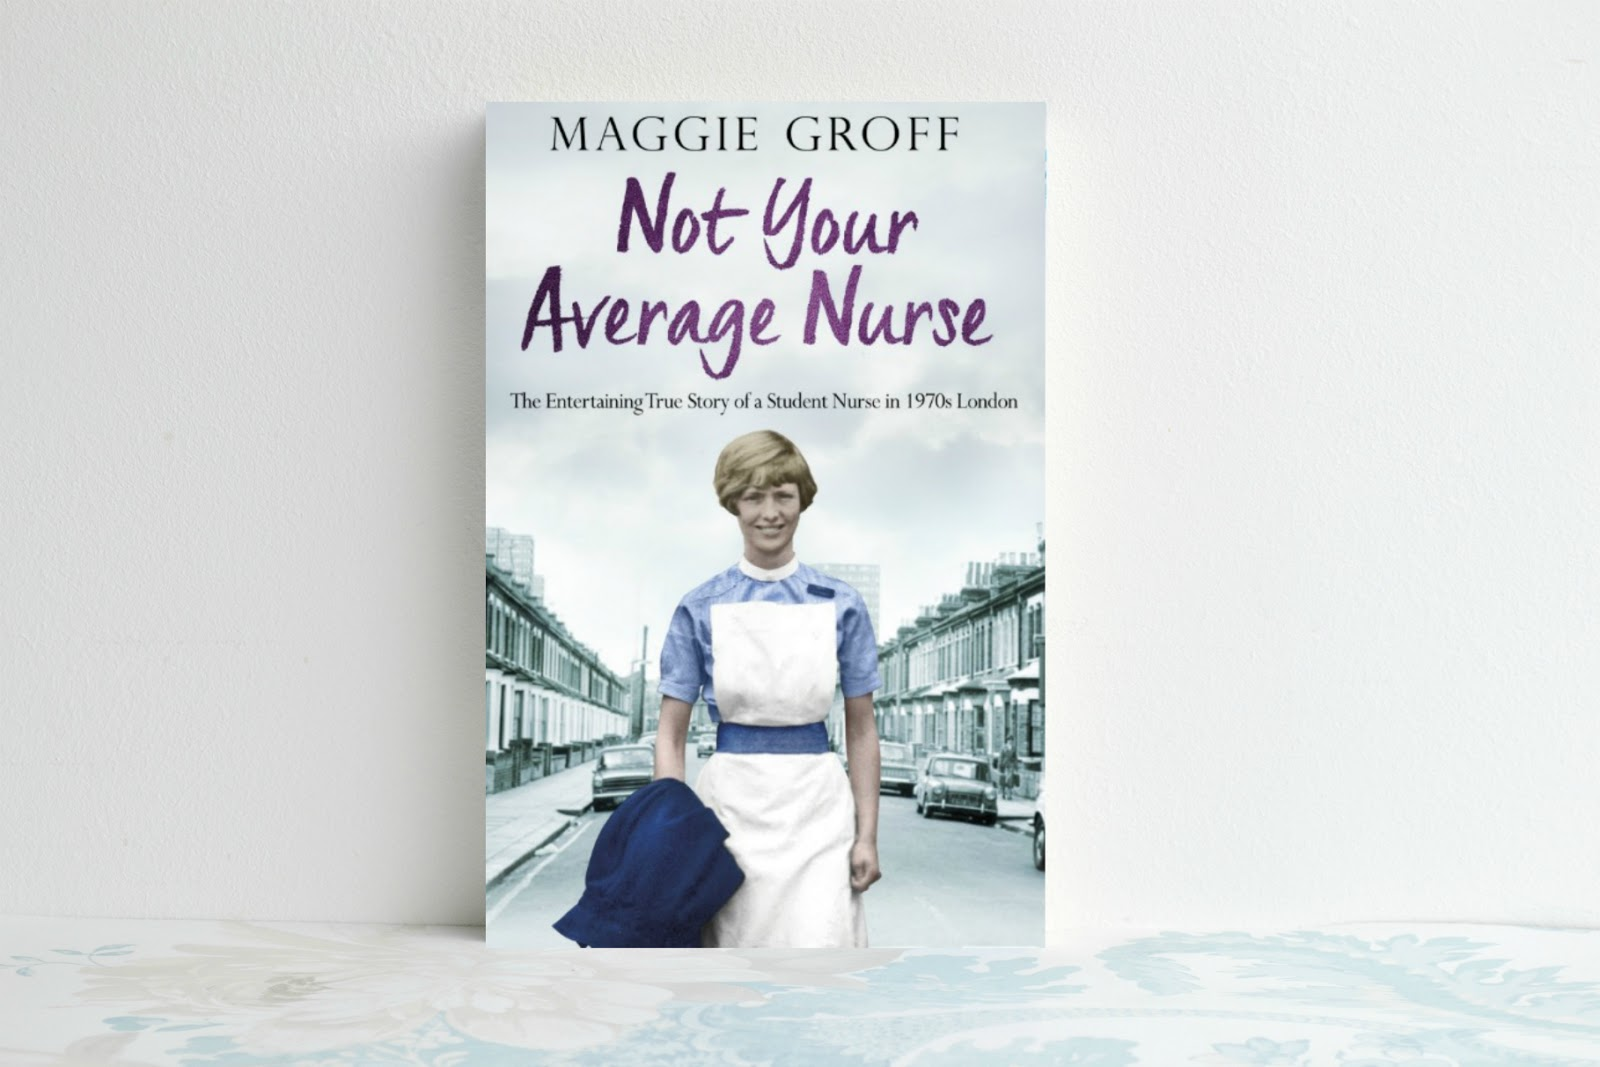 Not Your Average Nurse by Maggie Groff!